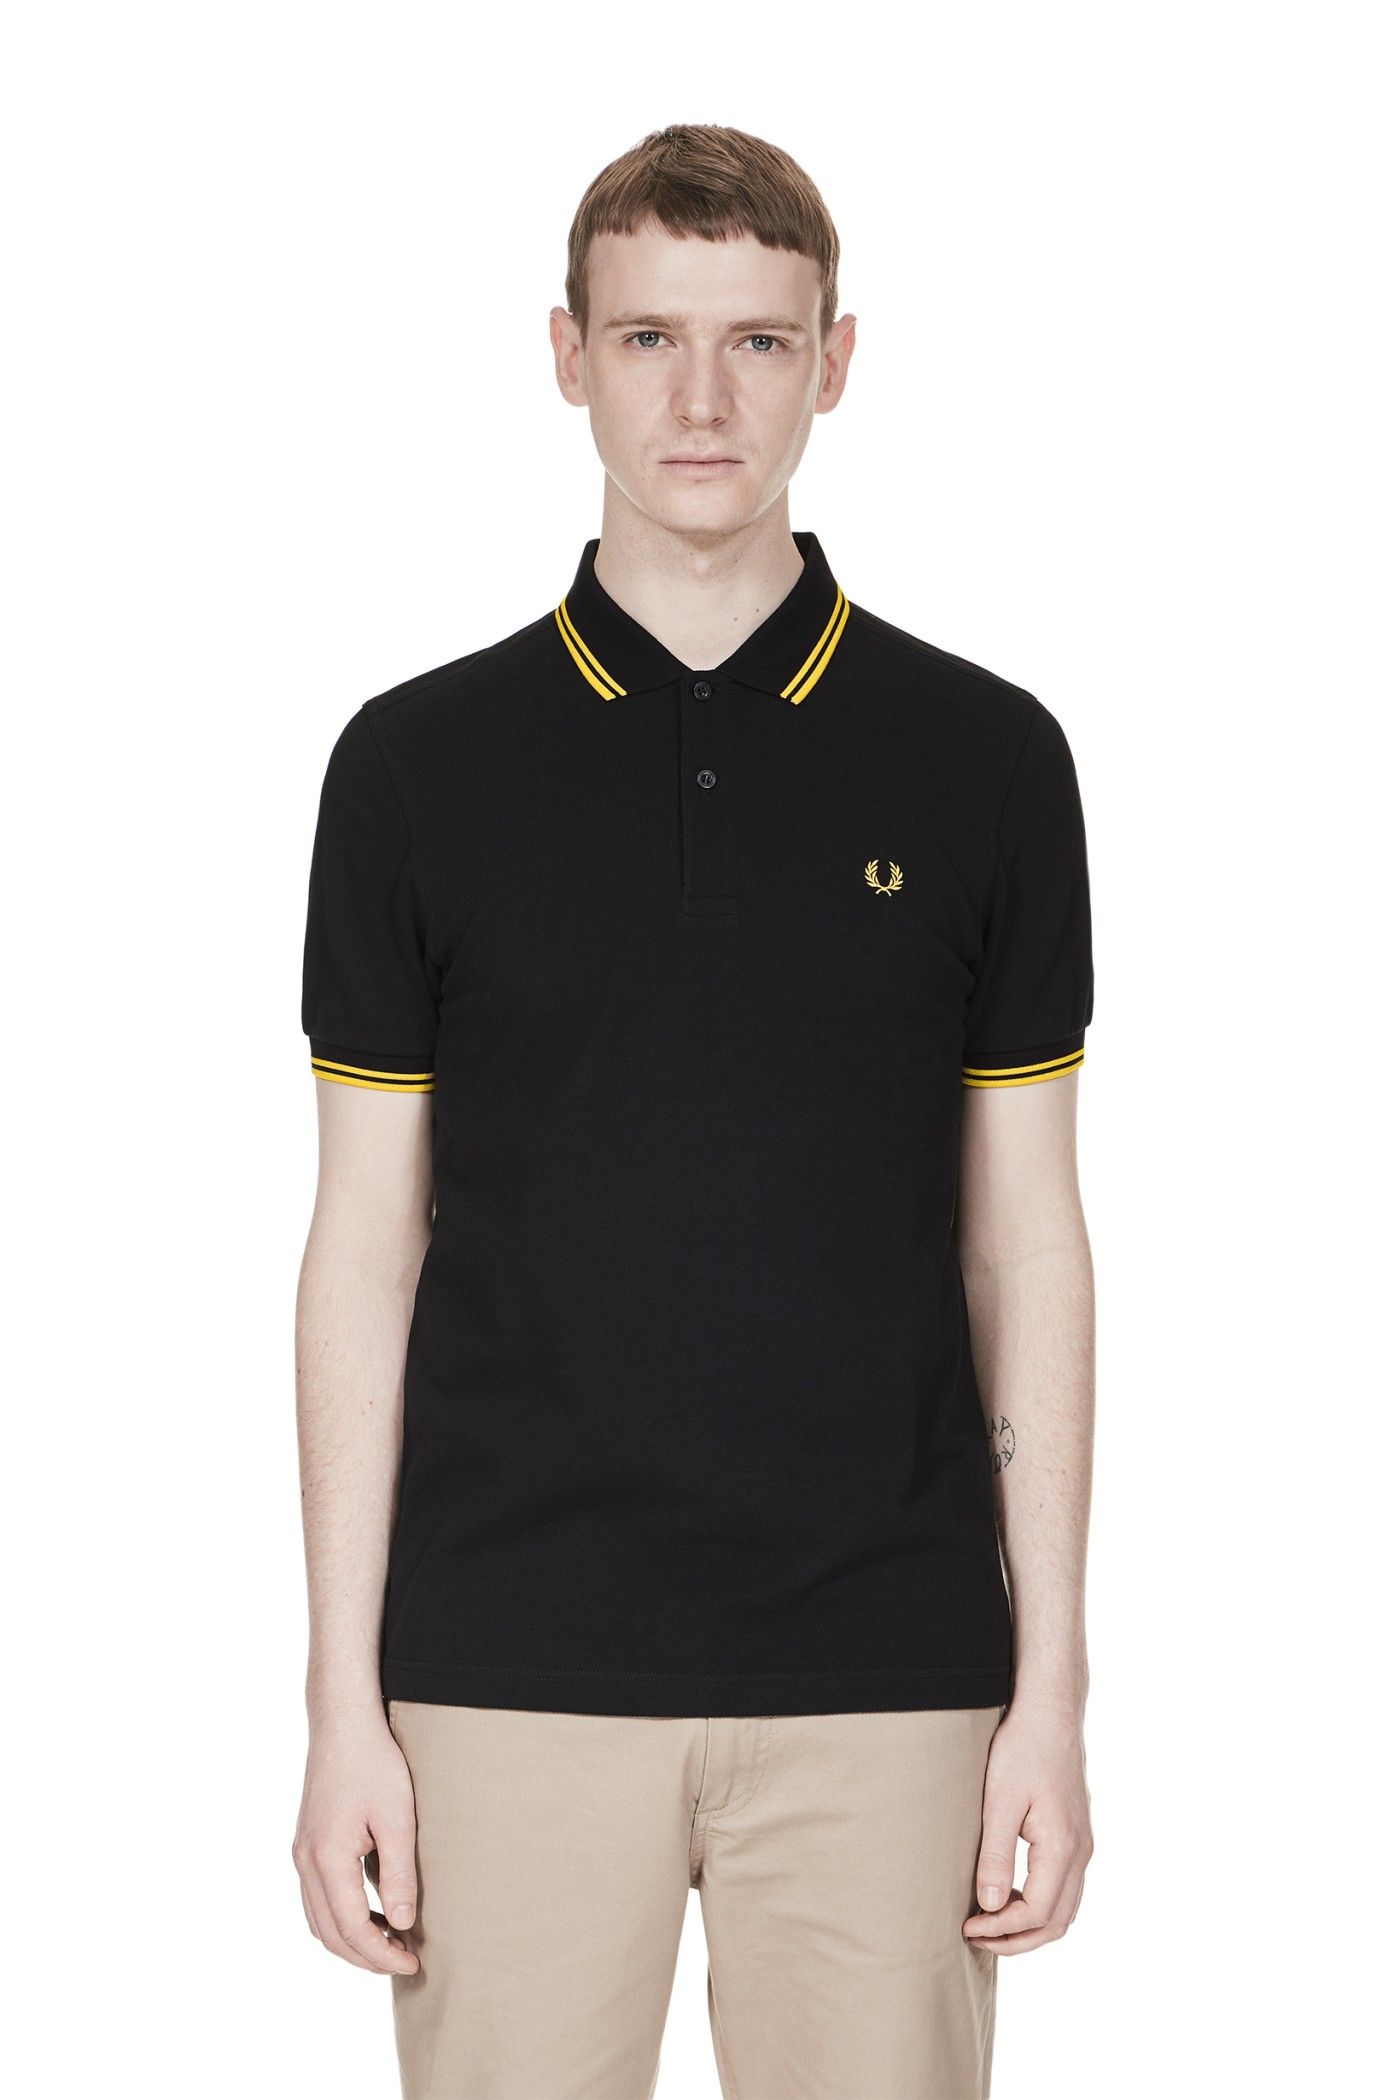 Fred Perry M3600 Black Bright Yellow Bright Yellow